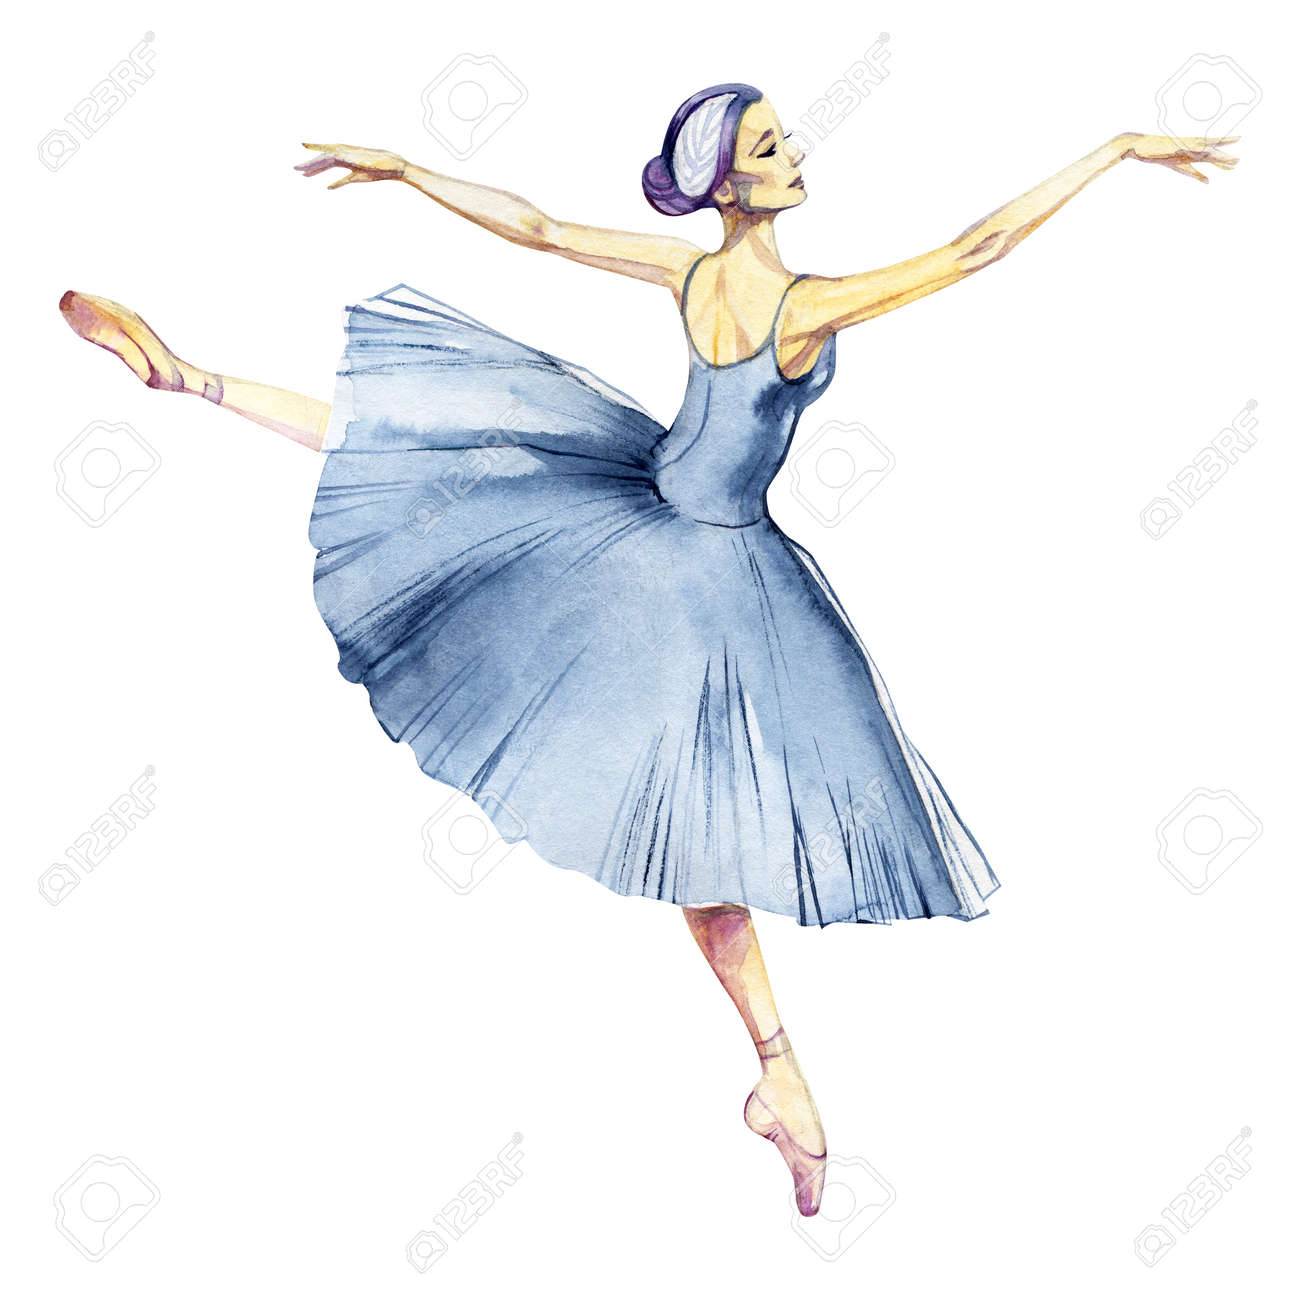 Ballerina Dancing Watercolor Painting Isolated On White Background Stock Photo Picture And Royalty Free Image Image 117357895